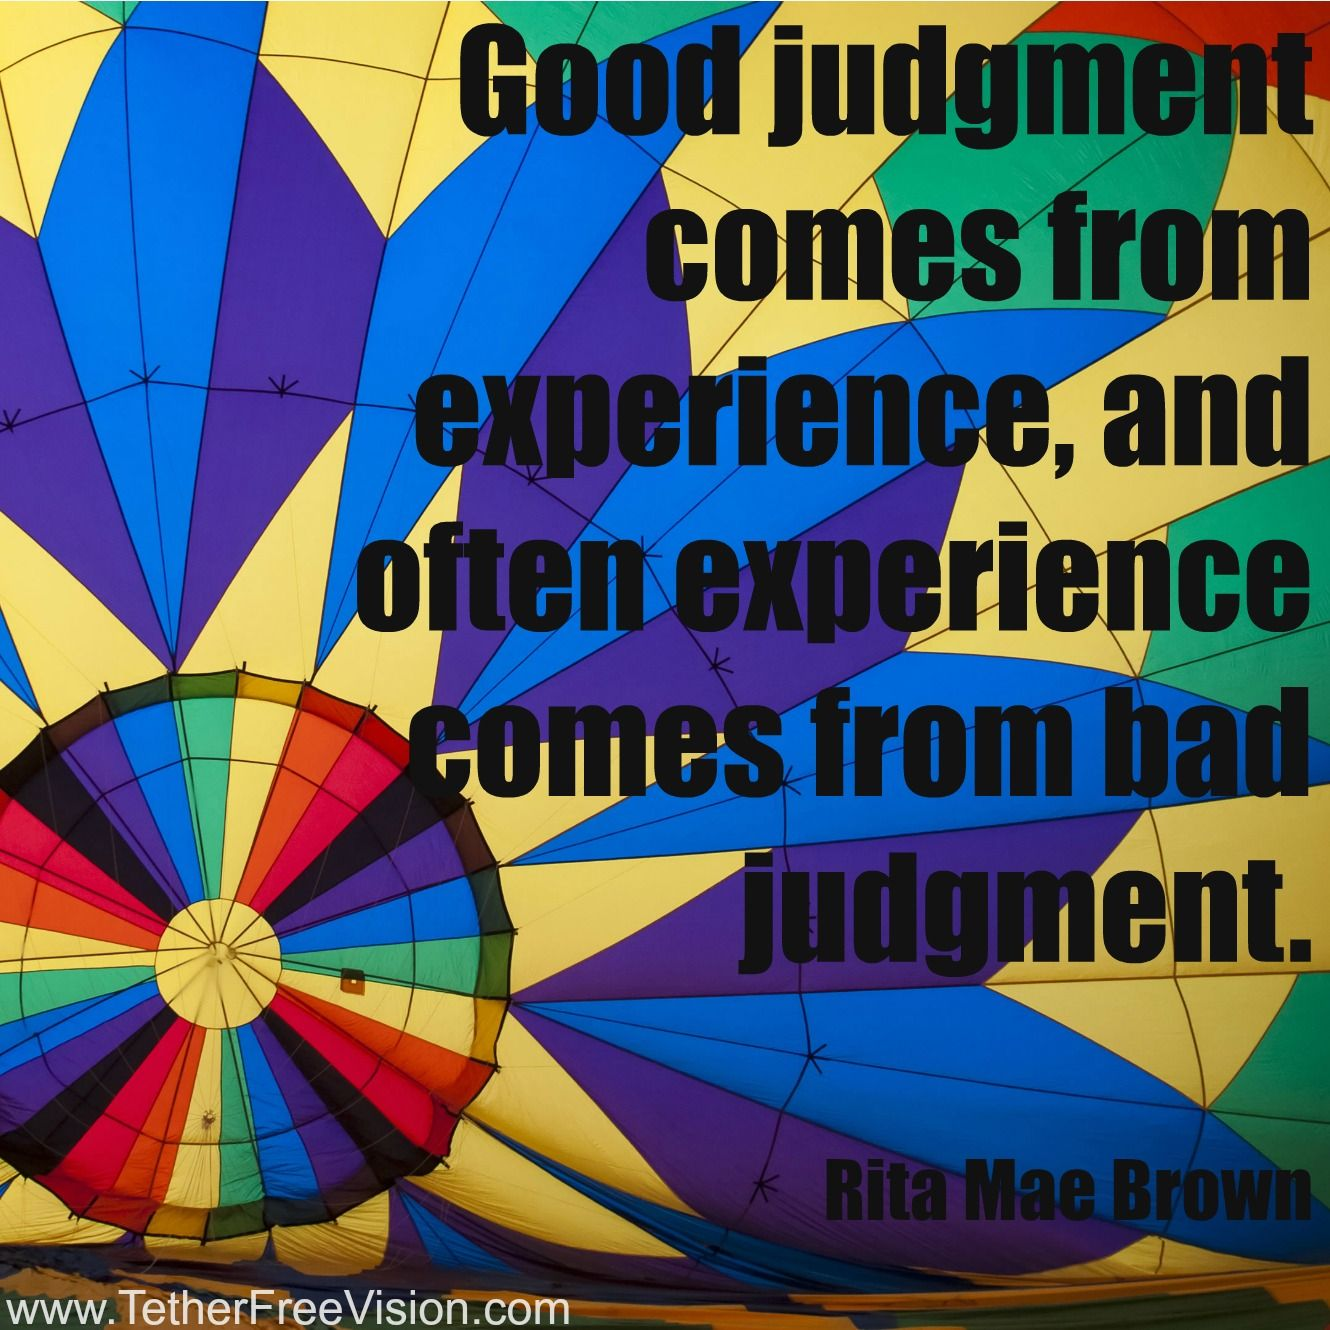 Good judgment comes from experience, and often experience comes from bad judgment. ~Rita Mae Brown